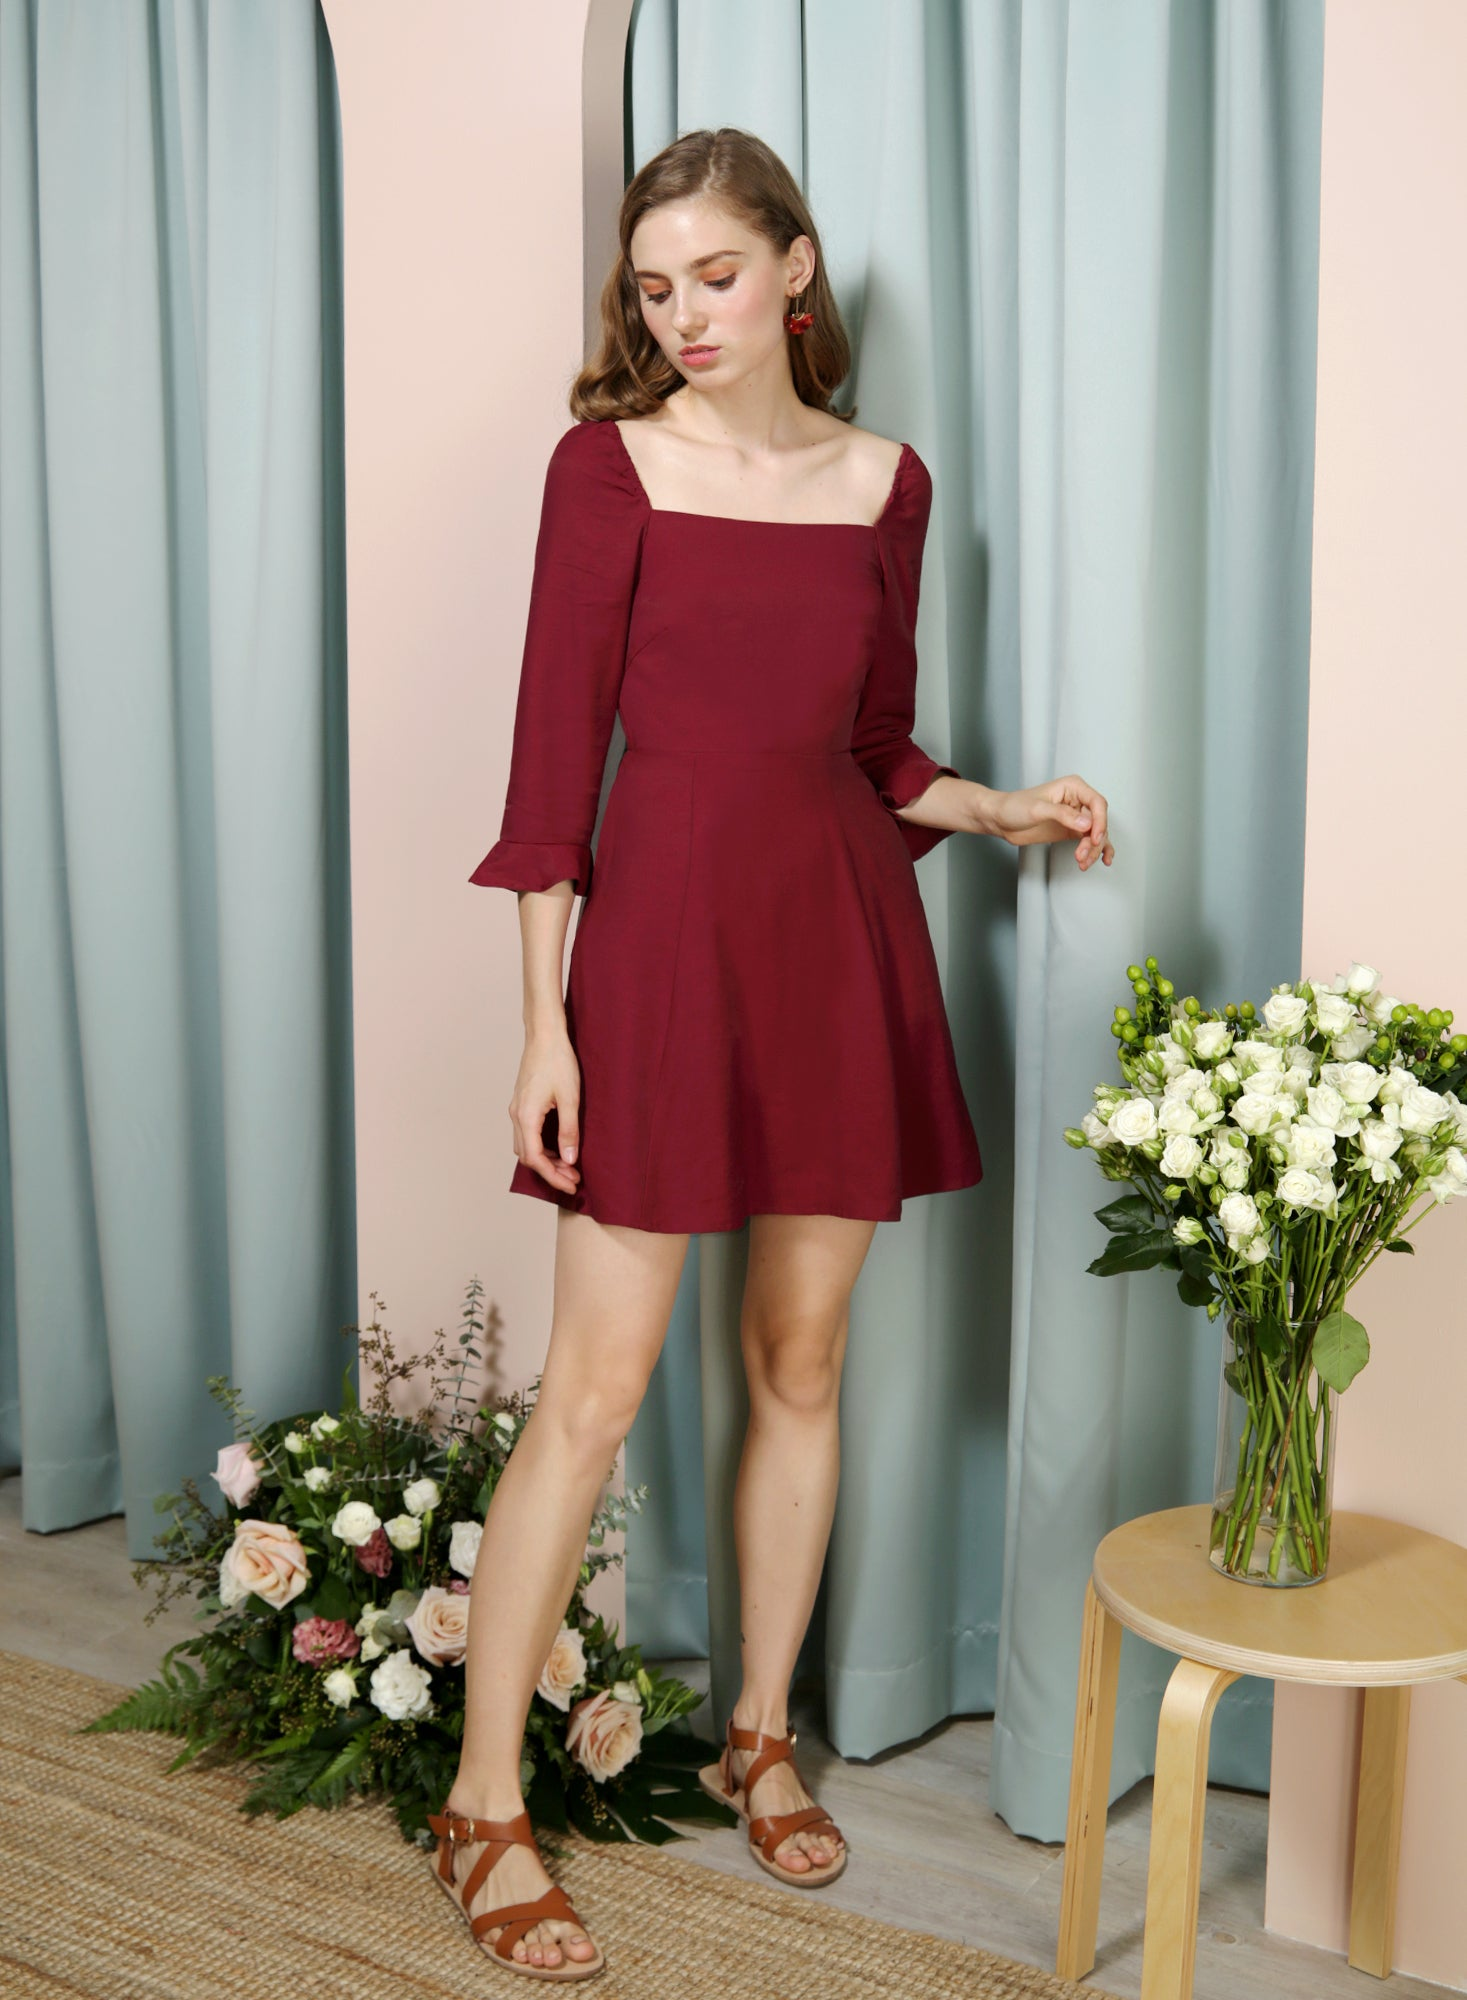 JOYOUS Square Neckline Dress (Wine) - And Well Dressed